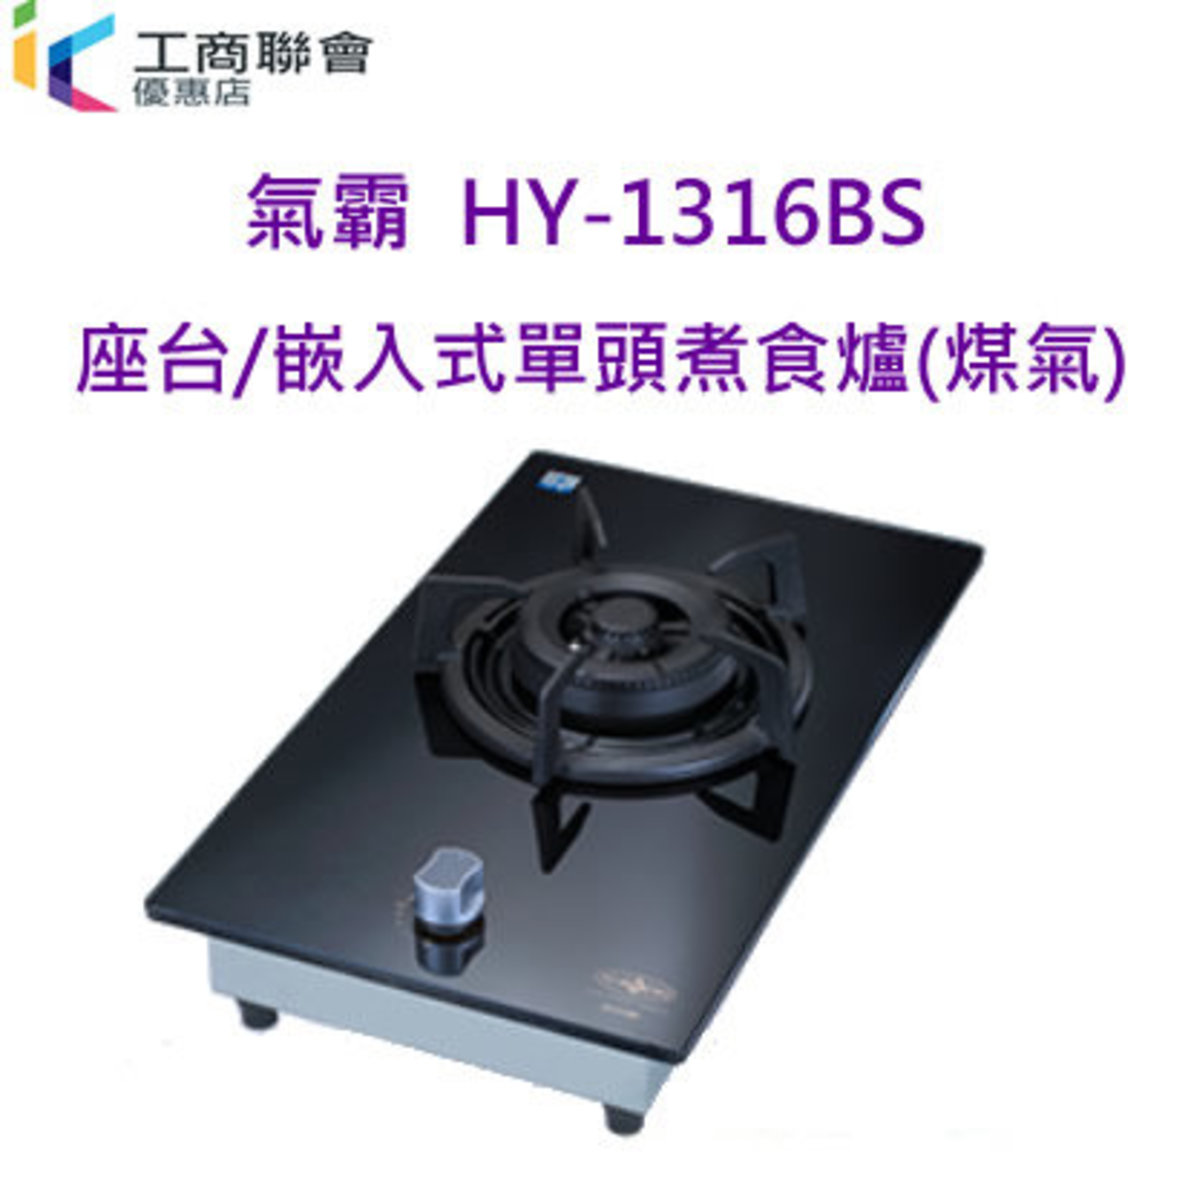 HY1316BS table/embedded combined single-head cooking stove (gas)